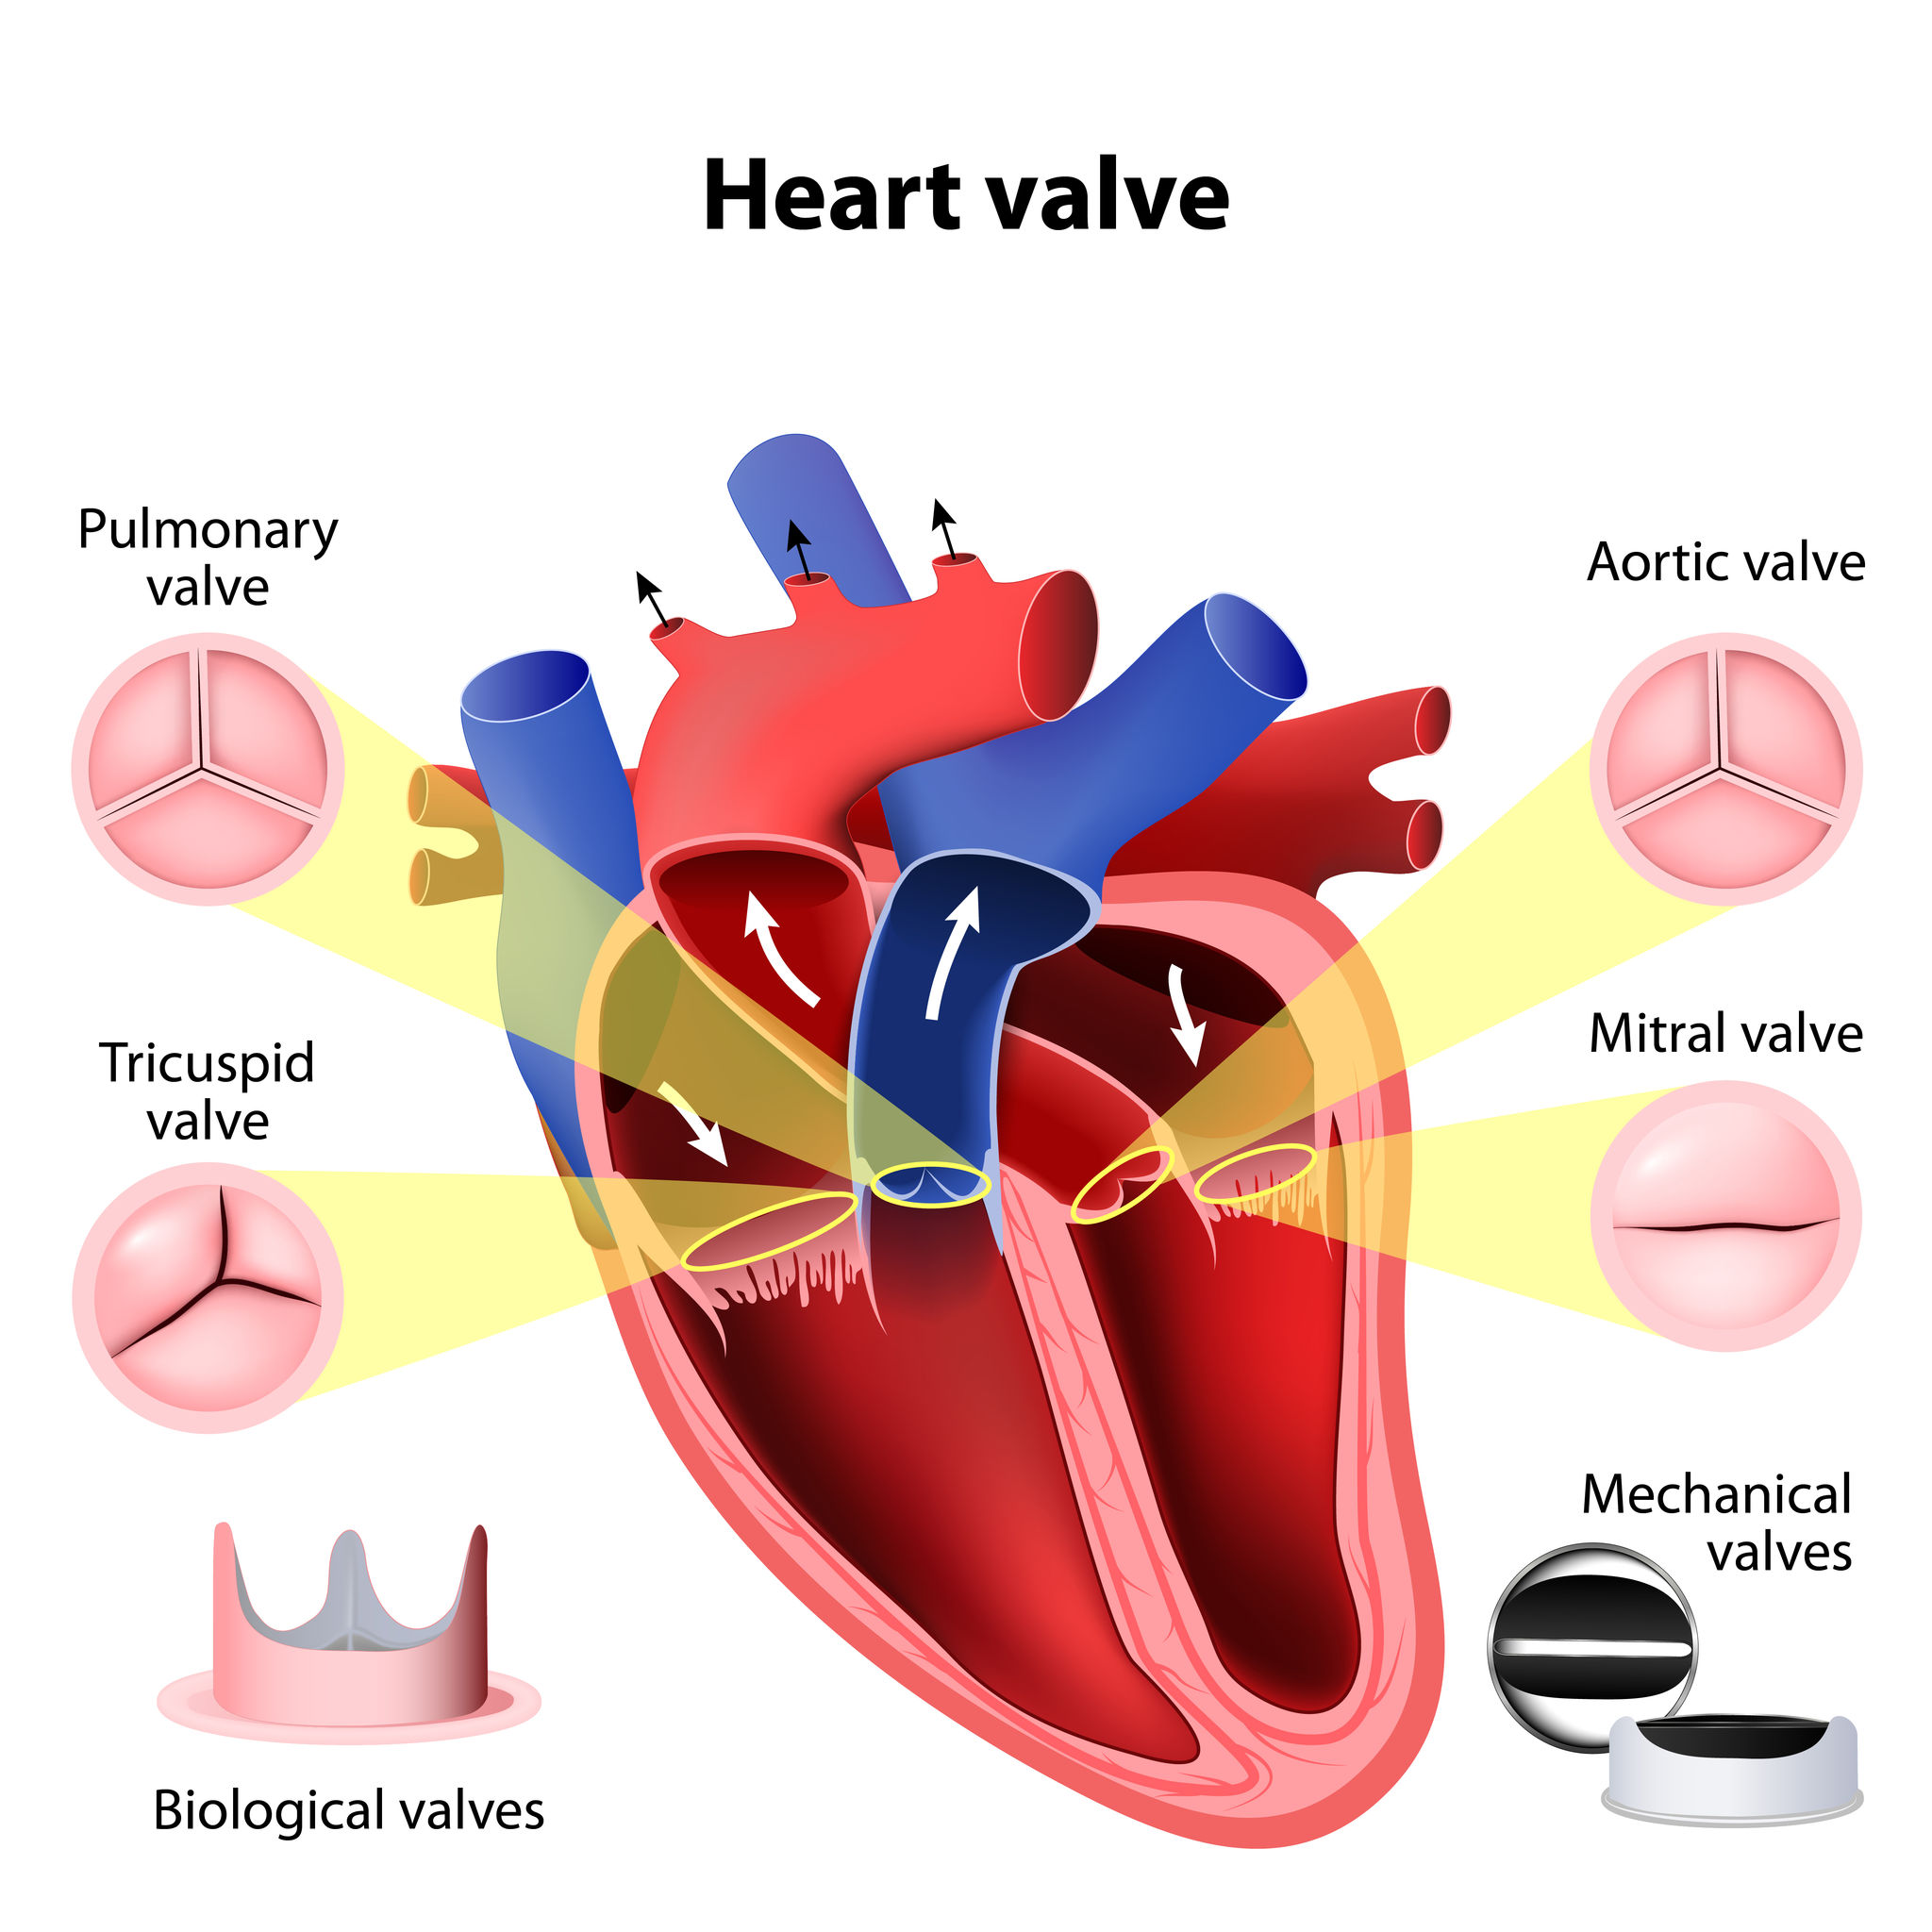 Anatomy of Heart Valves